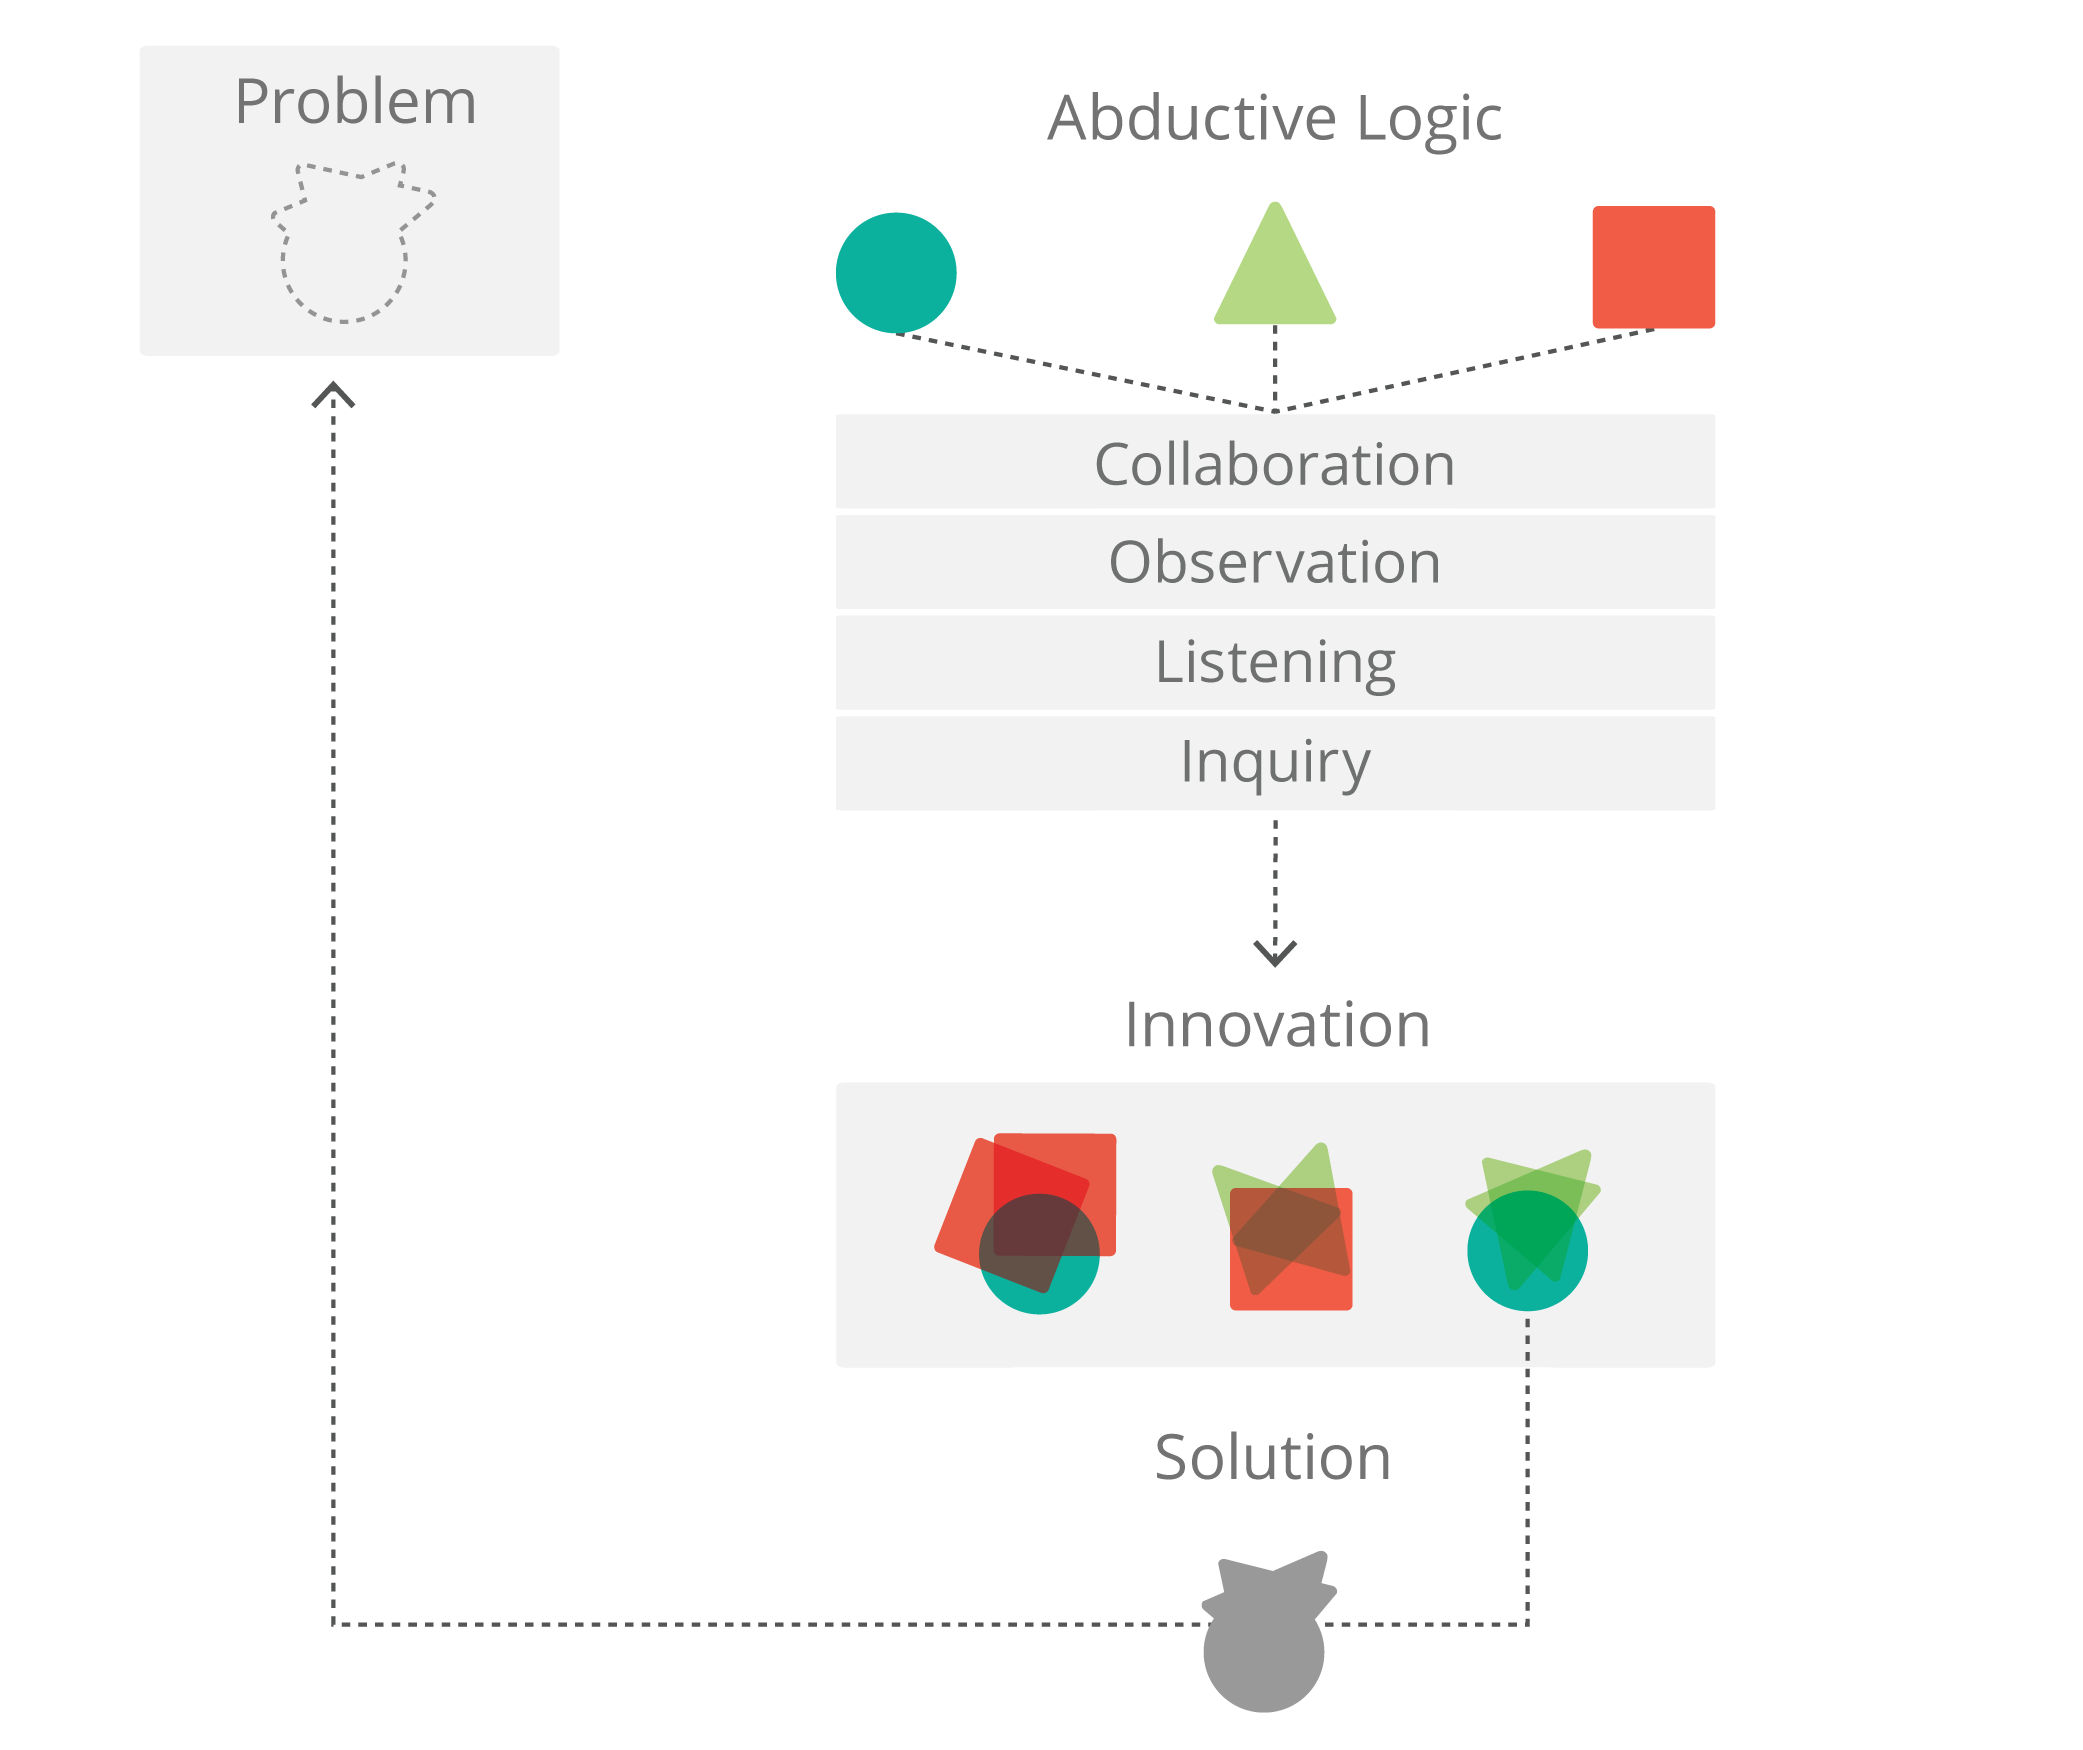 How design thinking uses expansive (abductive) logic. The